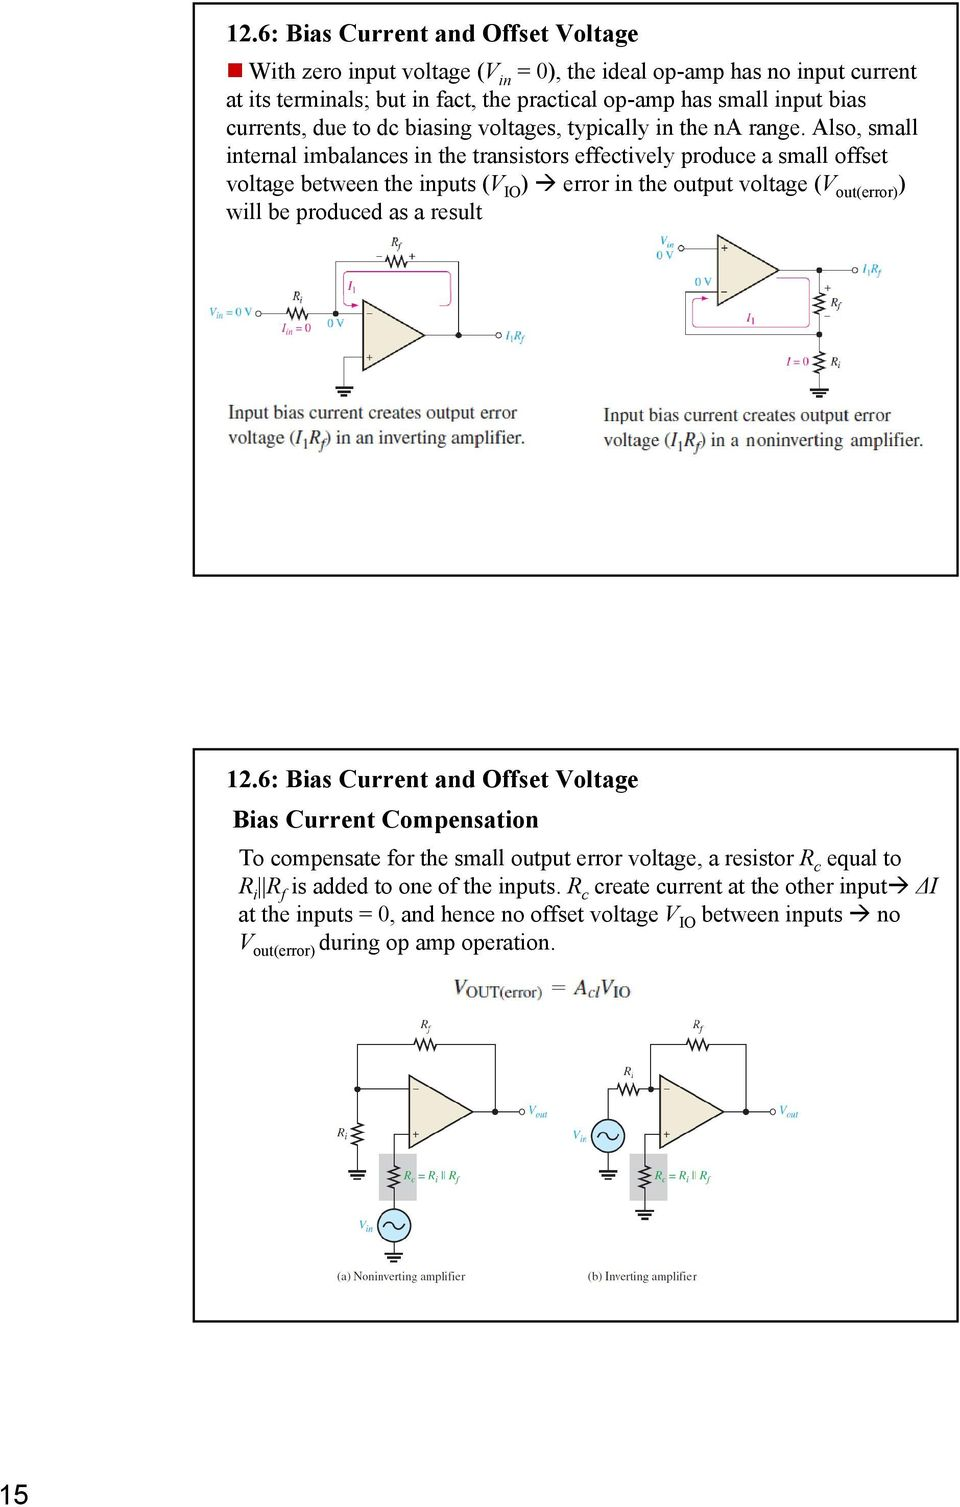 Also, small internal imbalances in the transistors effectively produce a small offset voltage between the inputs (V IO ) error in the output voltage (V out(error) ) will be produced as a